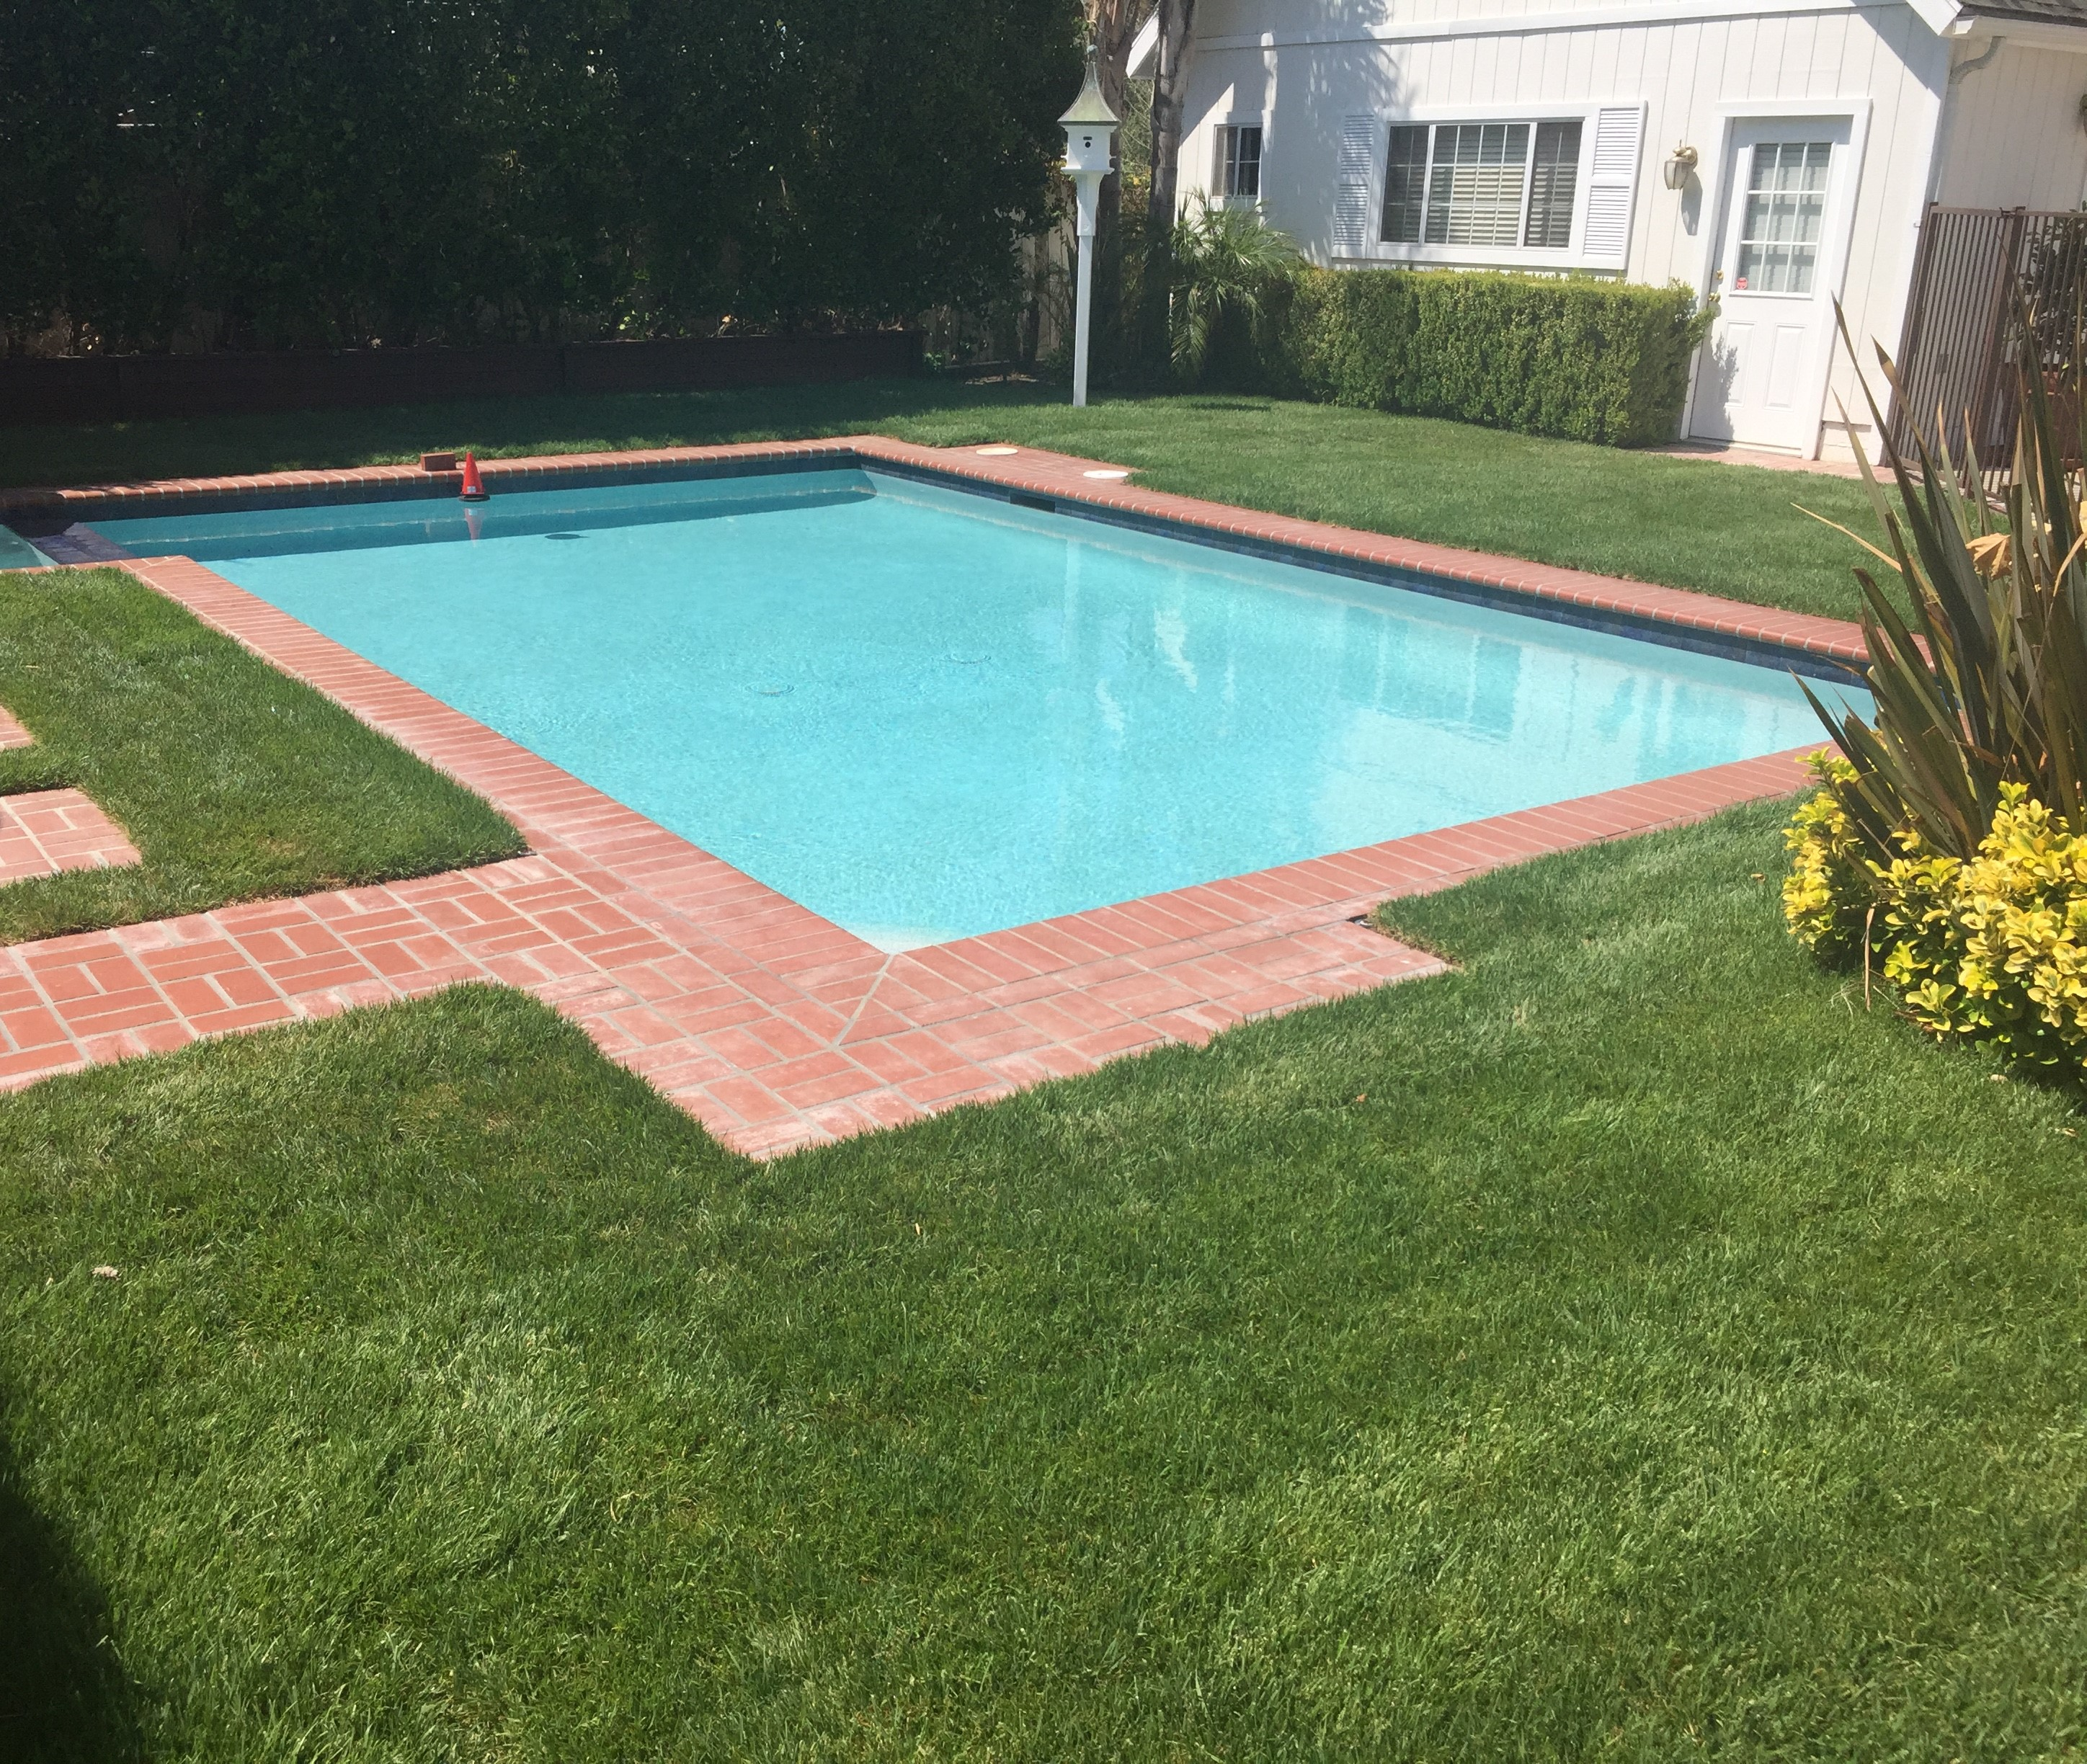 Pool with Brick Paving Surround